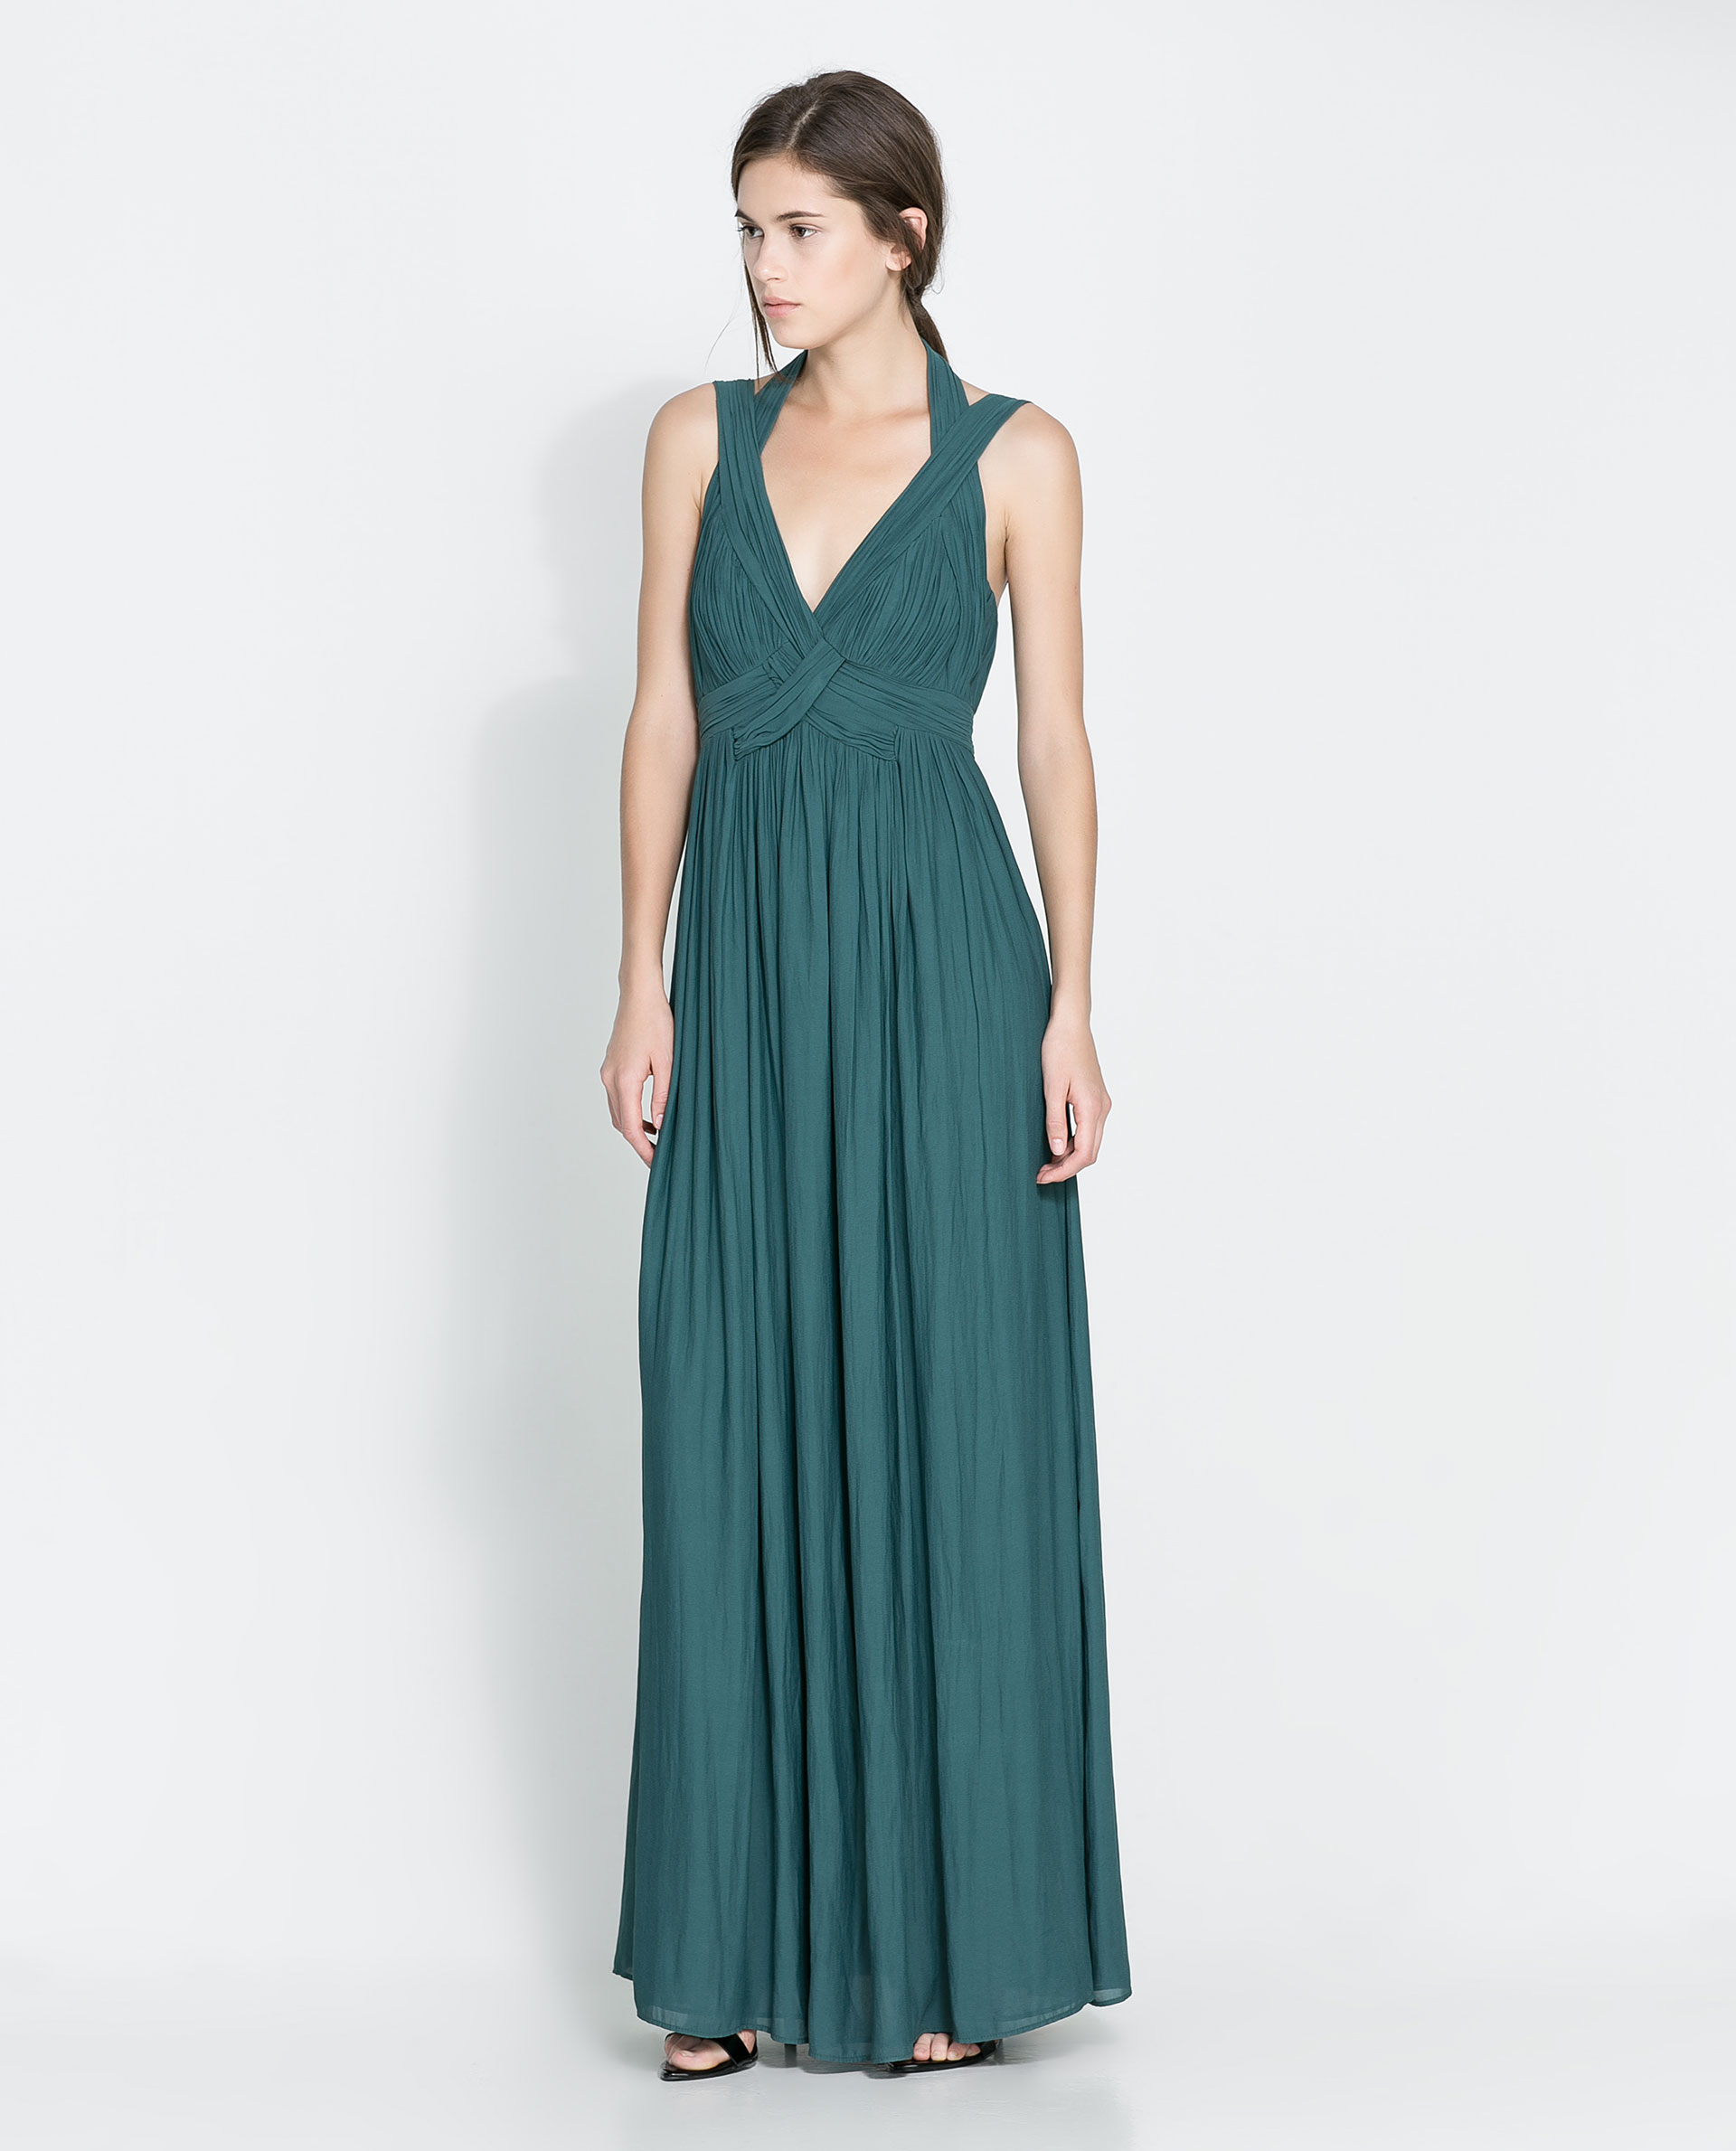 Long Dress Styles For Short Ladies Things To Know